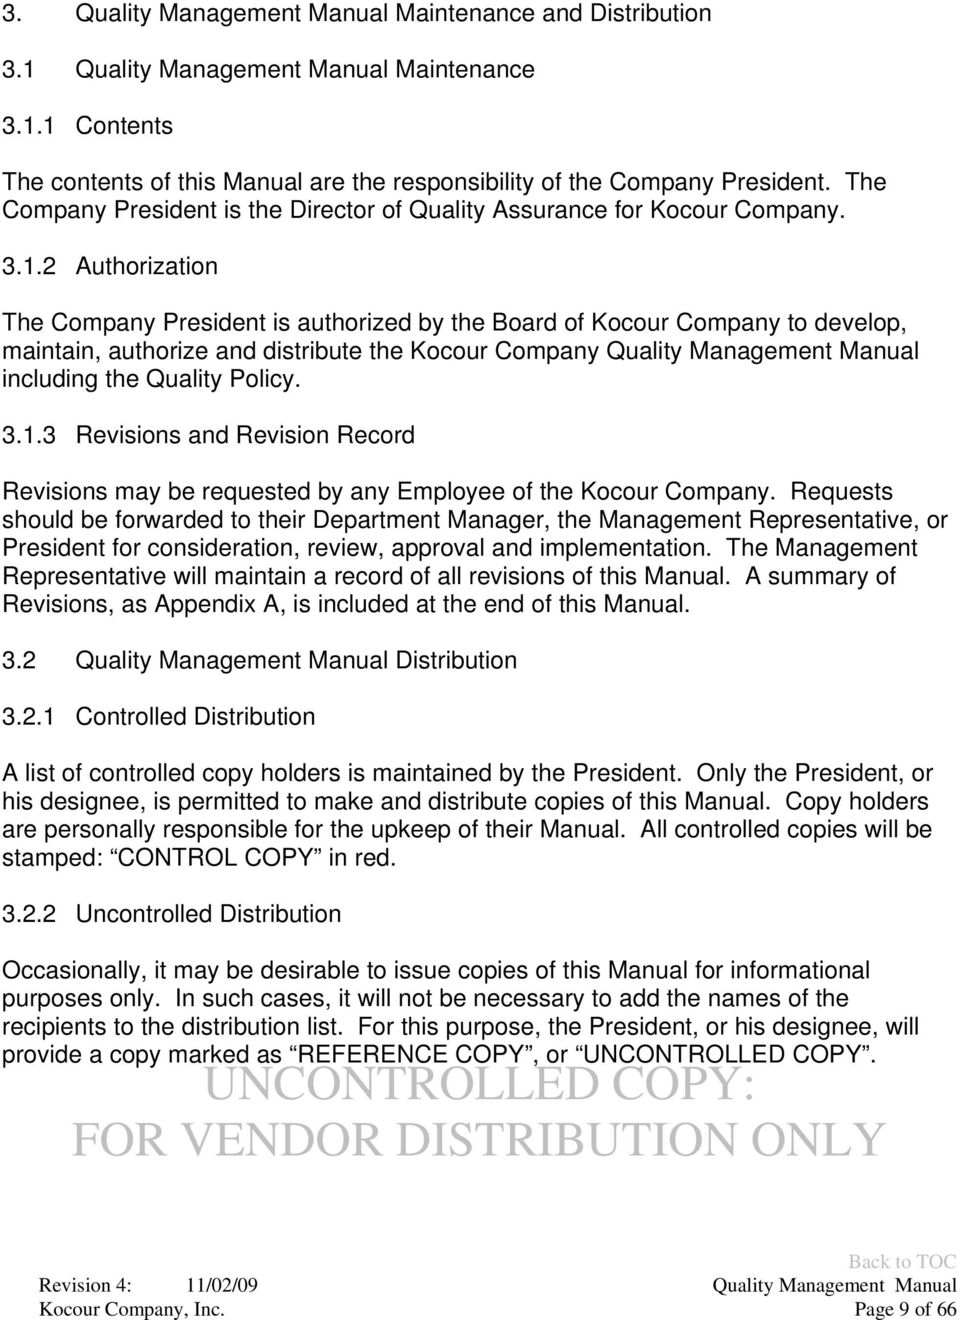 2 Authorization The Company President is authorized by the Board of Kocour Company to develop, maintain, authorize and distribute the Kocour Company Quality Management Manual including the Quality